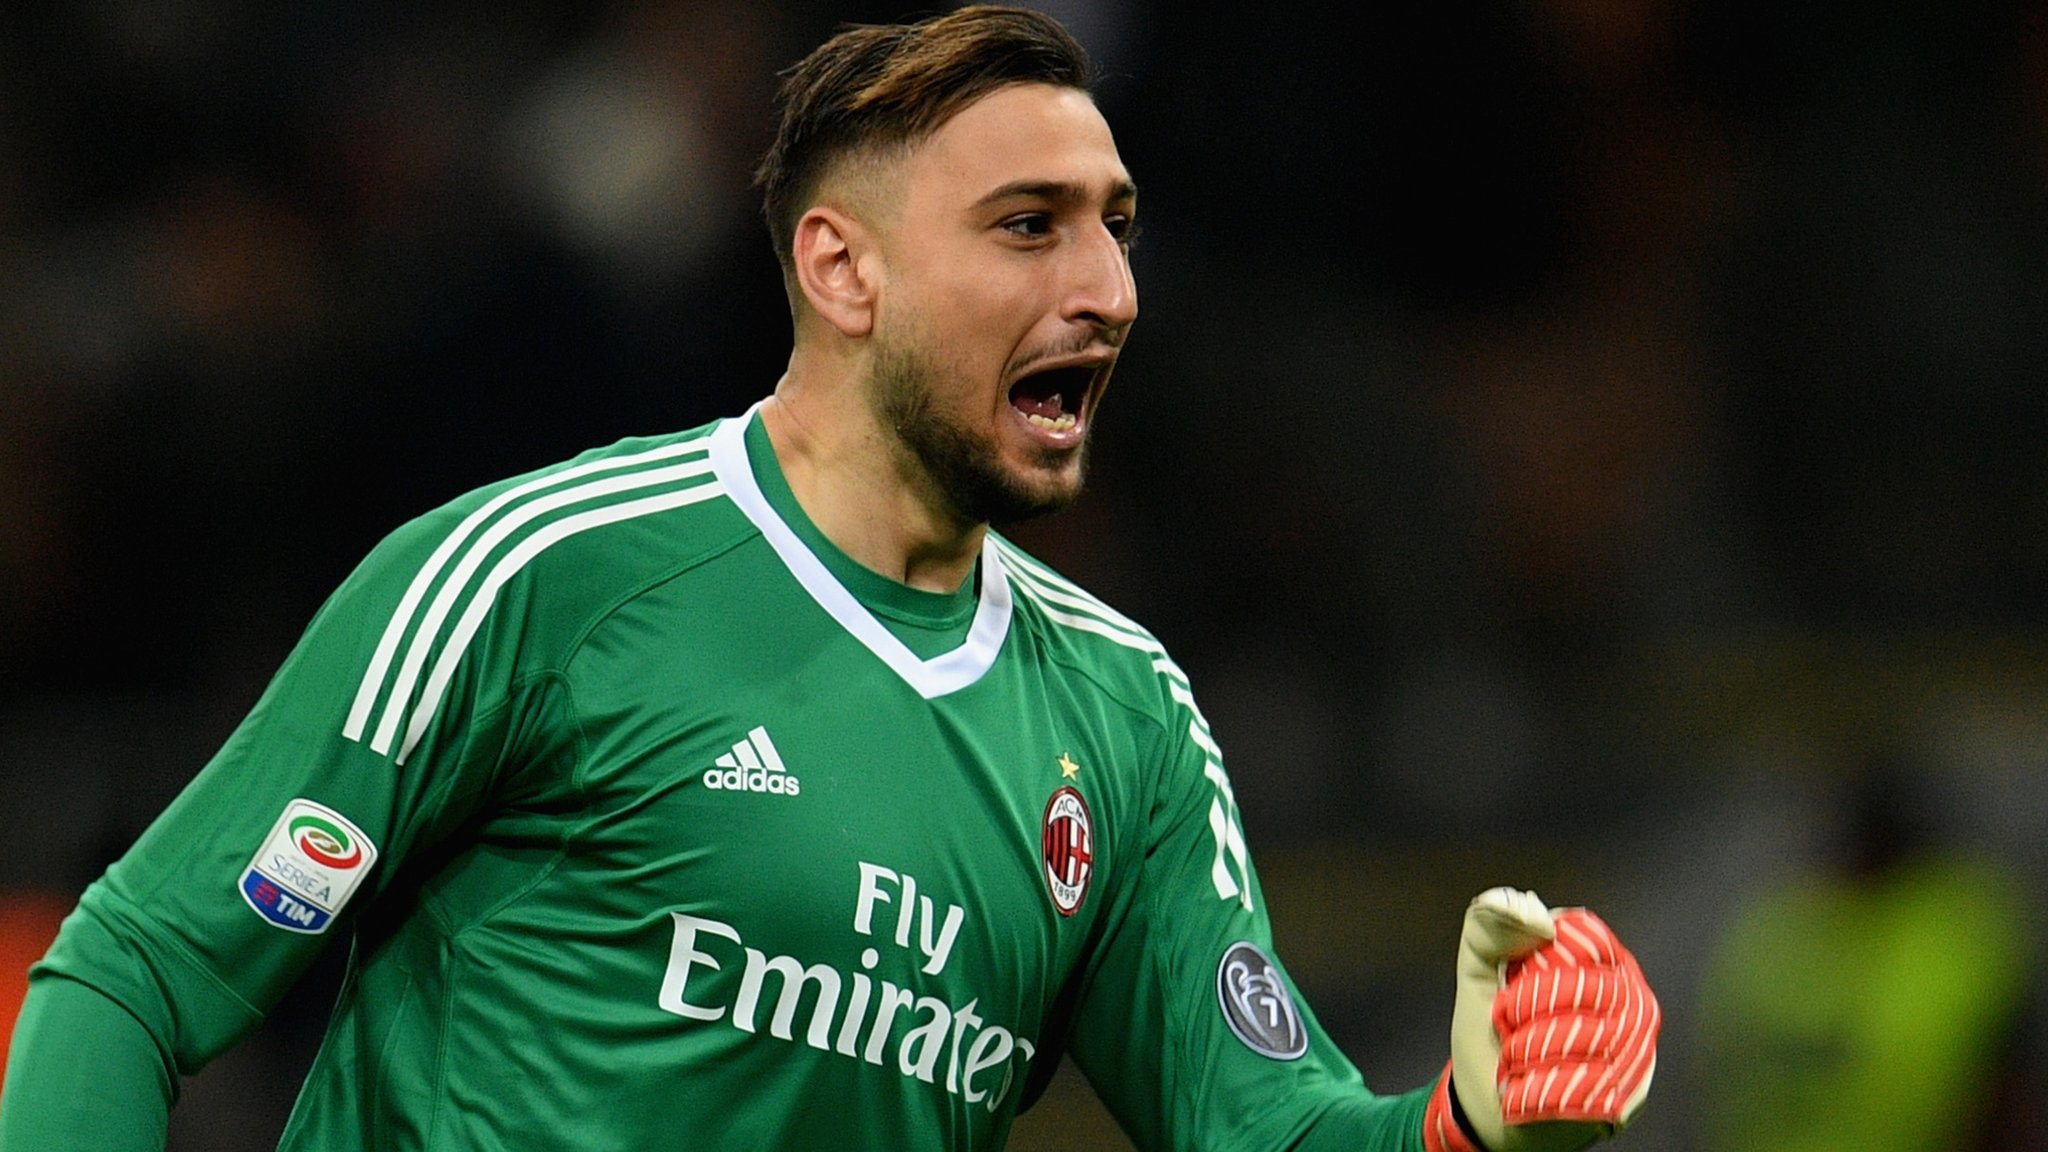 Gianluigi Donnarumma: AC Milan keeper named top under-20 European prospect